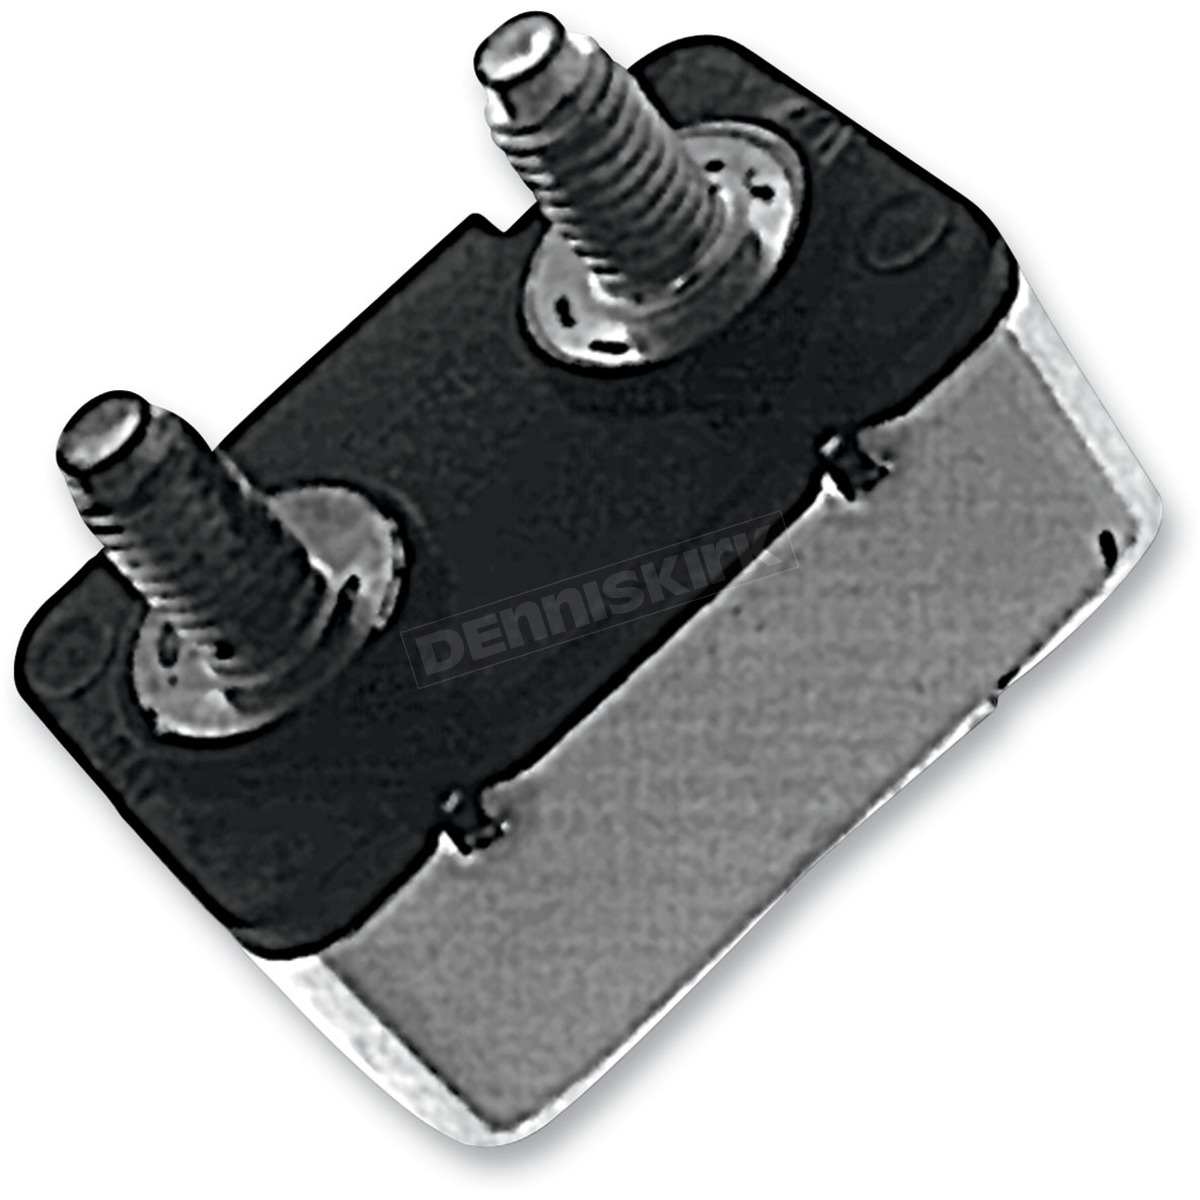 15 AMP Two-Stud Style Circuit Breakers - MC-CBR3 Harley Wiring Diagram For Dummies A Davidson Sportster Xl Kickstart on